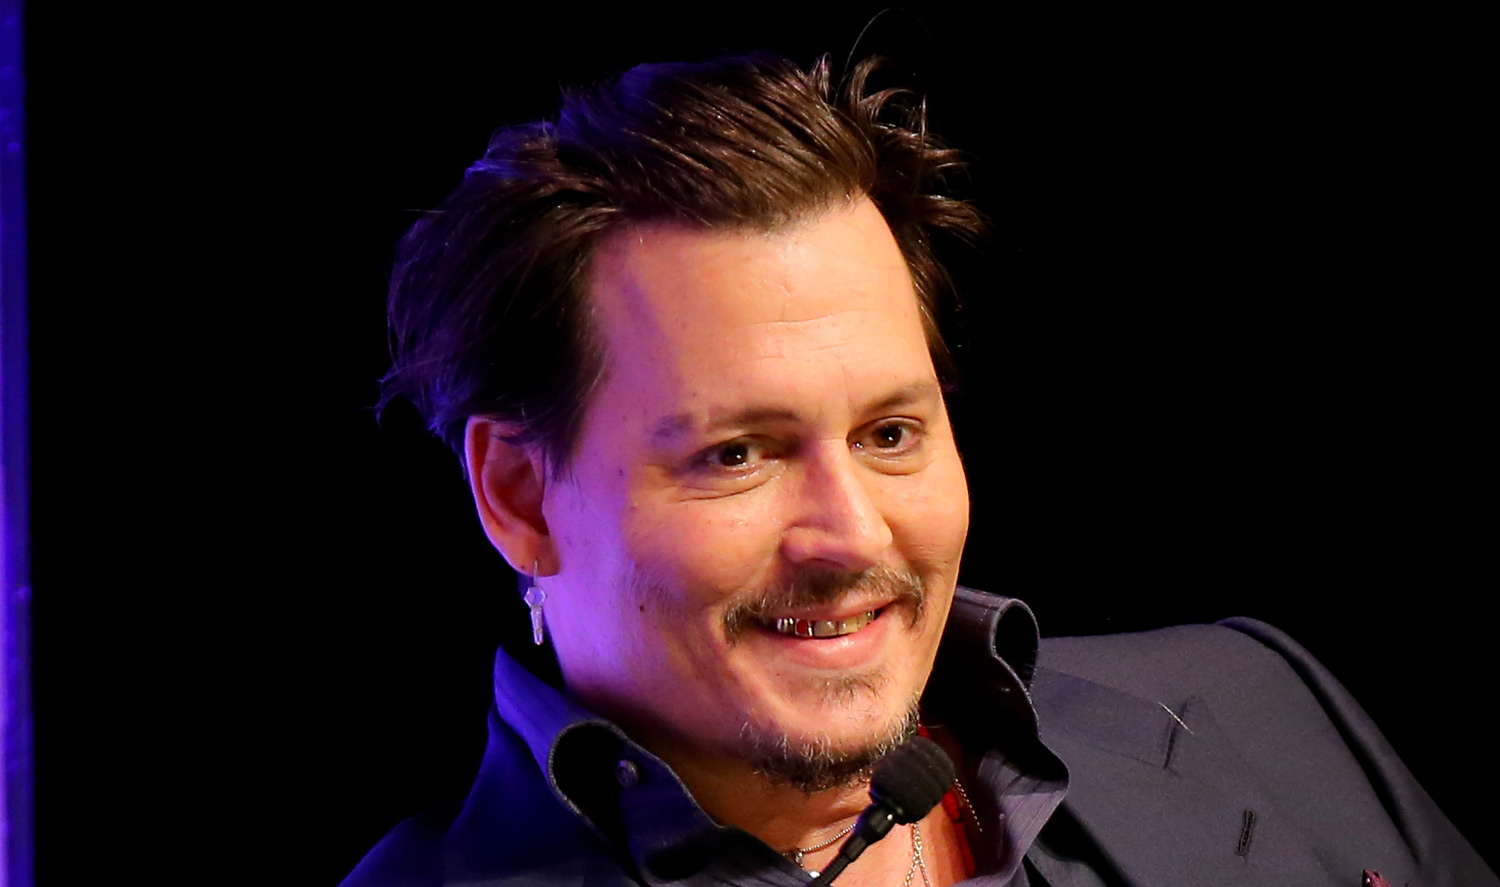 Johnny Depp news - NewsLocker